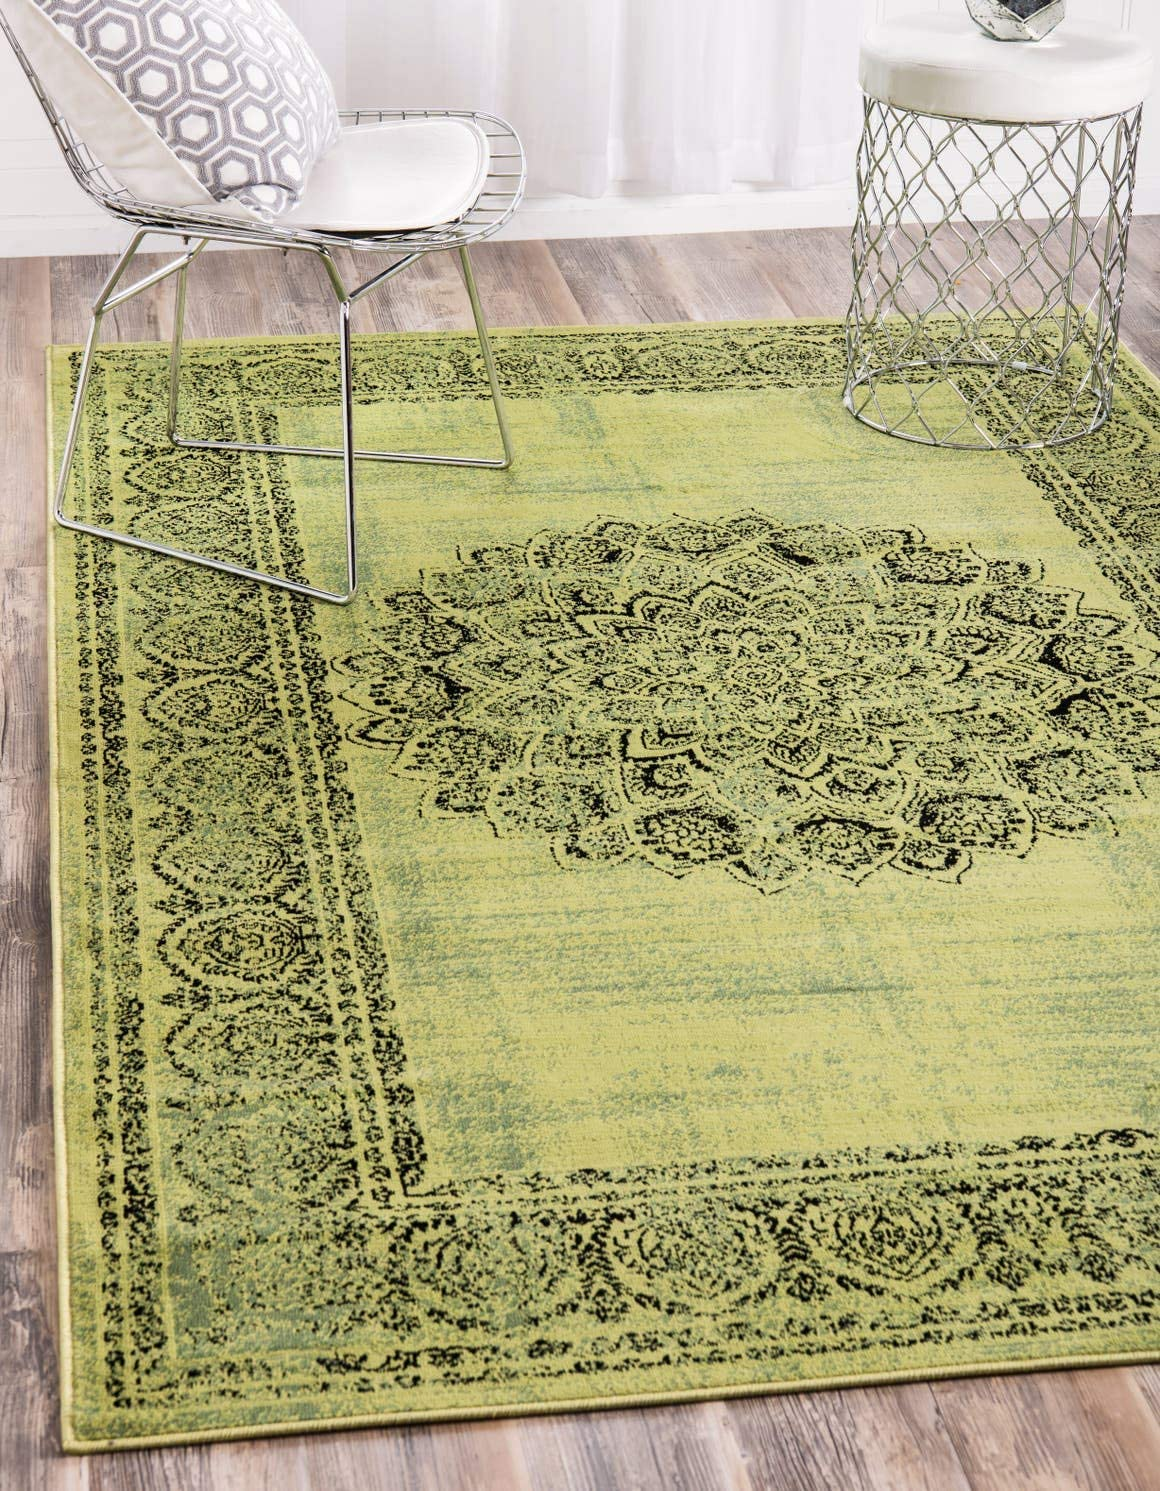 Unique Loom Imperial Collection Modern Traditional Vintage Distressed Sage Green Area Rug 4 0 x 6 0